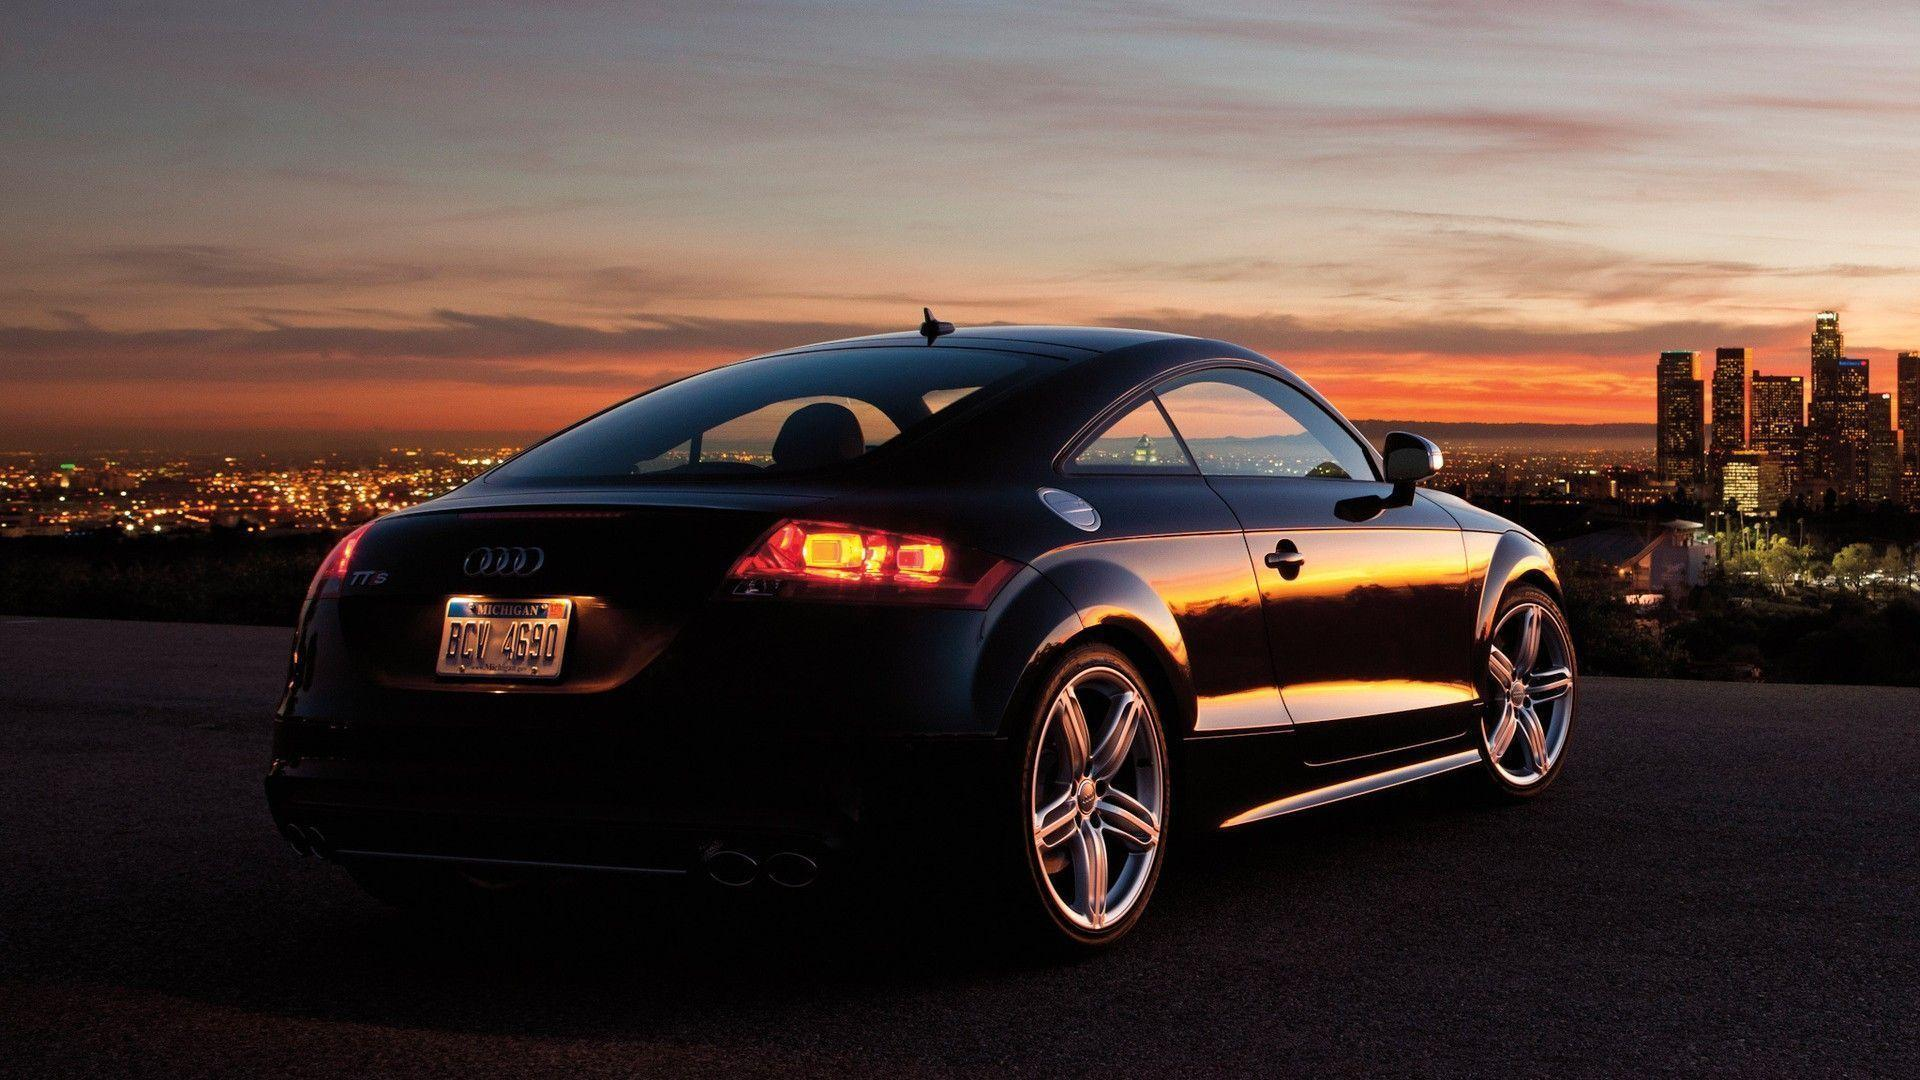 Audi Tt Wallpapers Wallpaper Cave